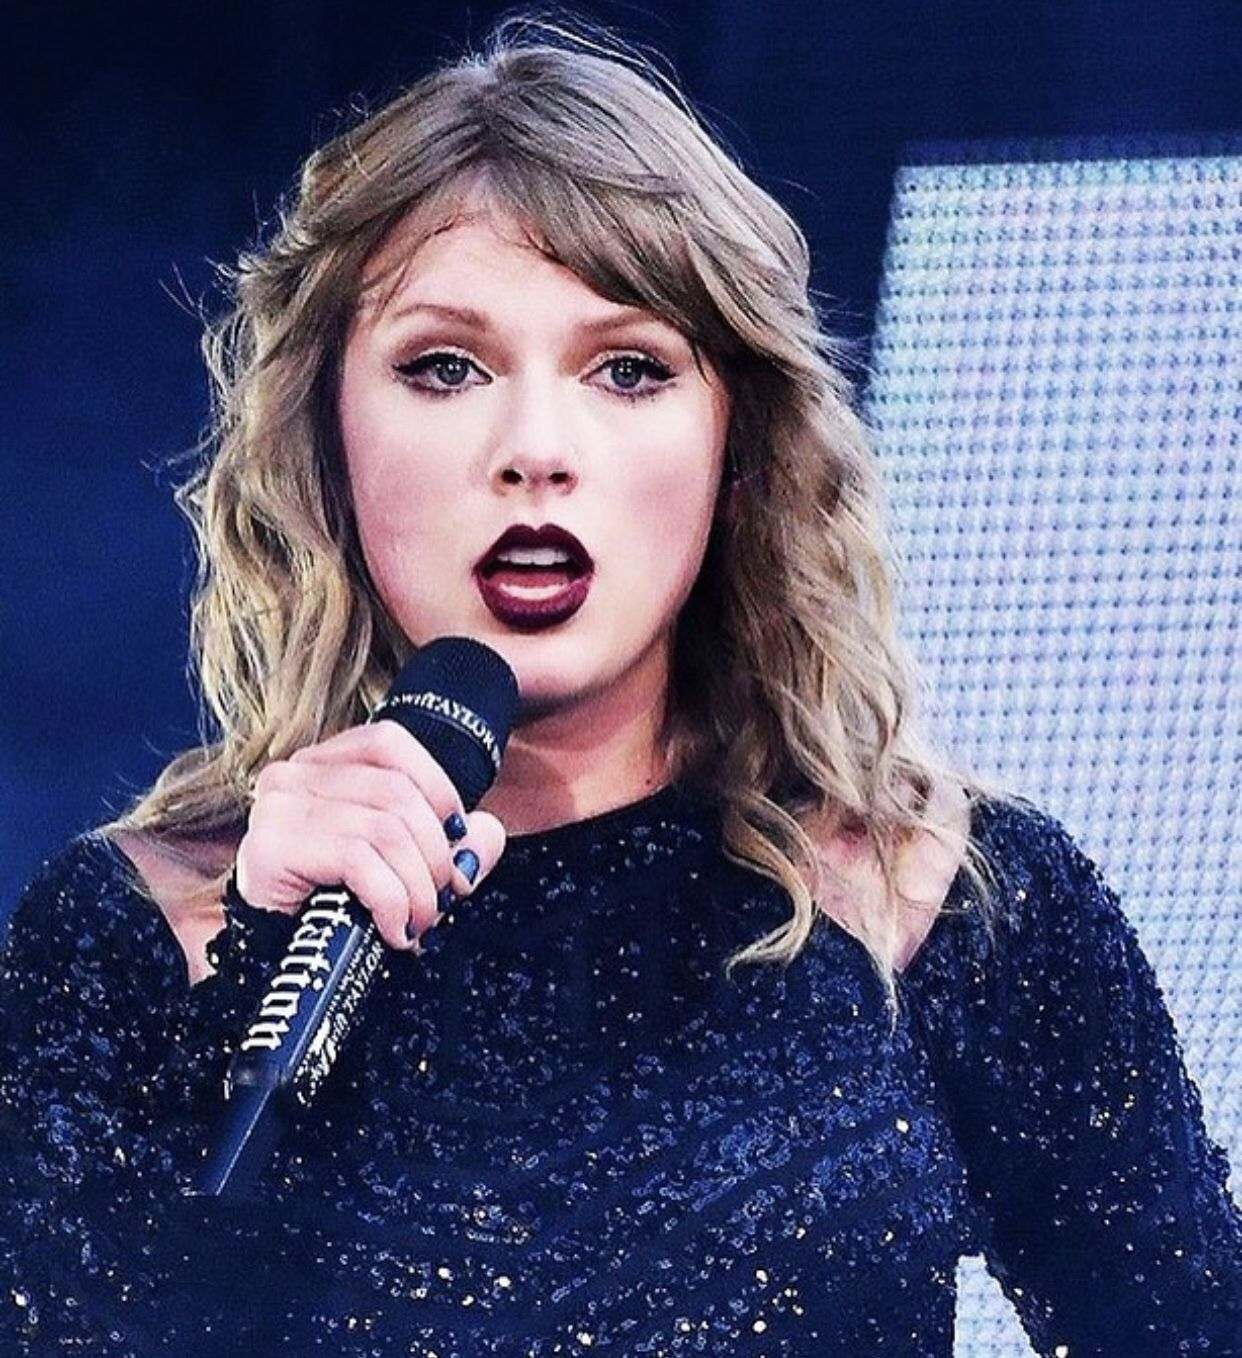 Pin by Asmah Mohammad on Swift | Taylor swift concert ...